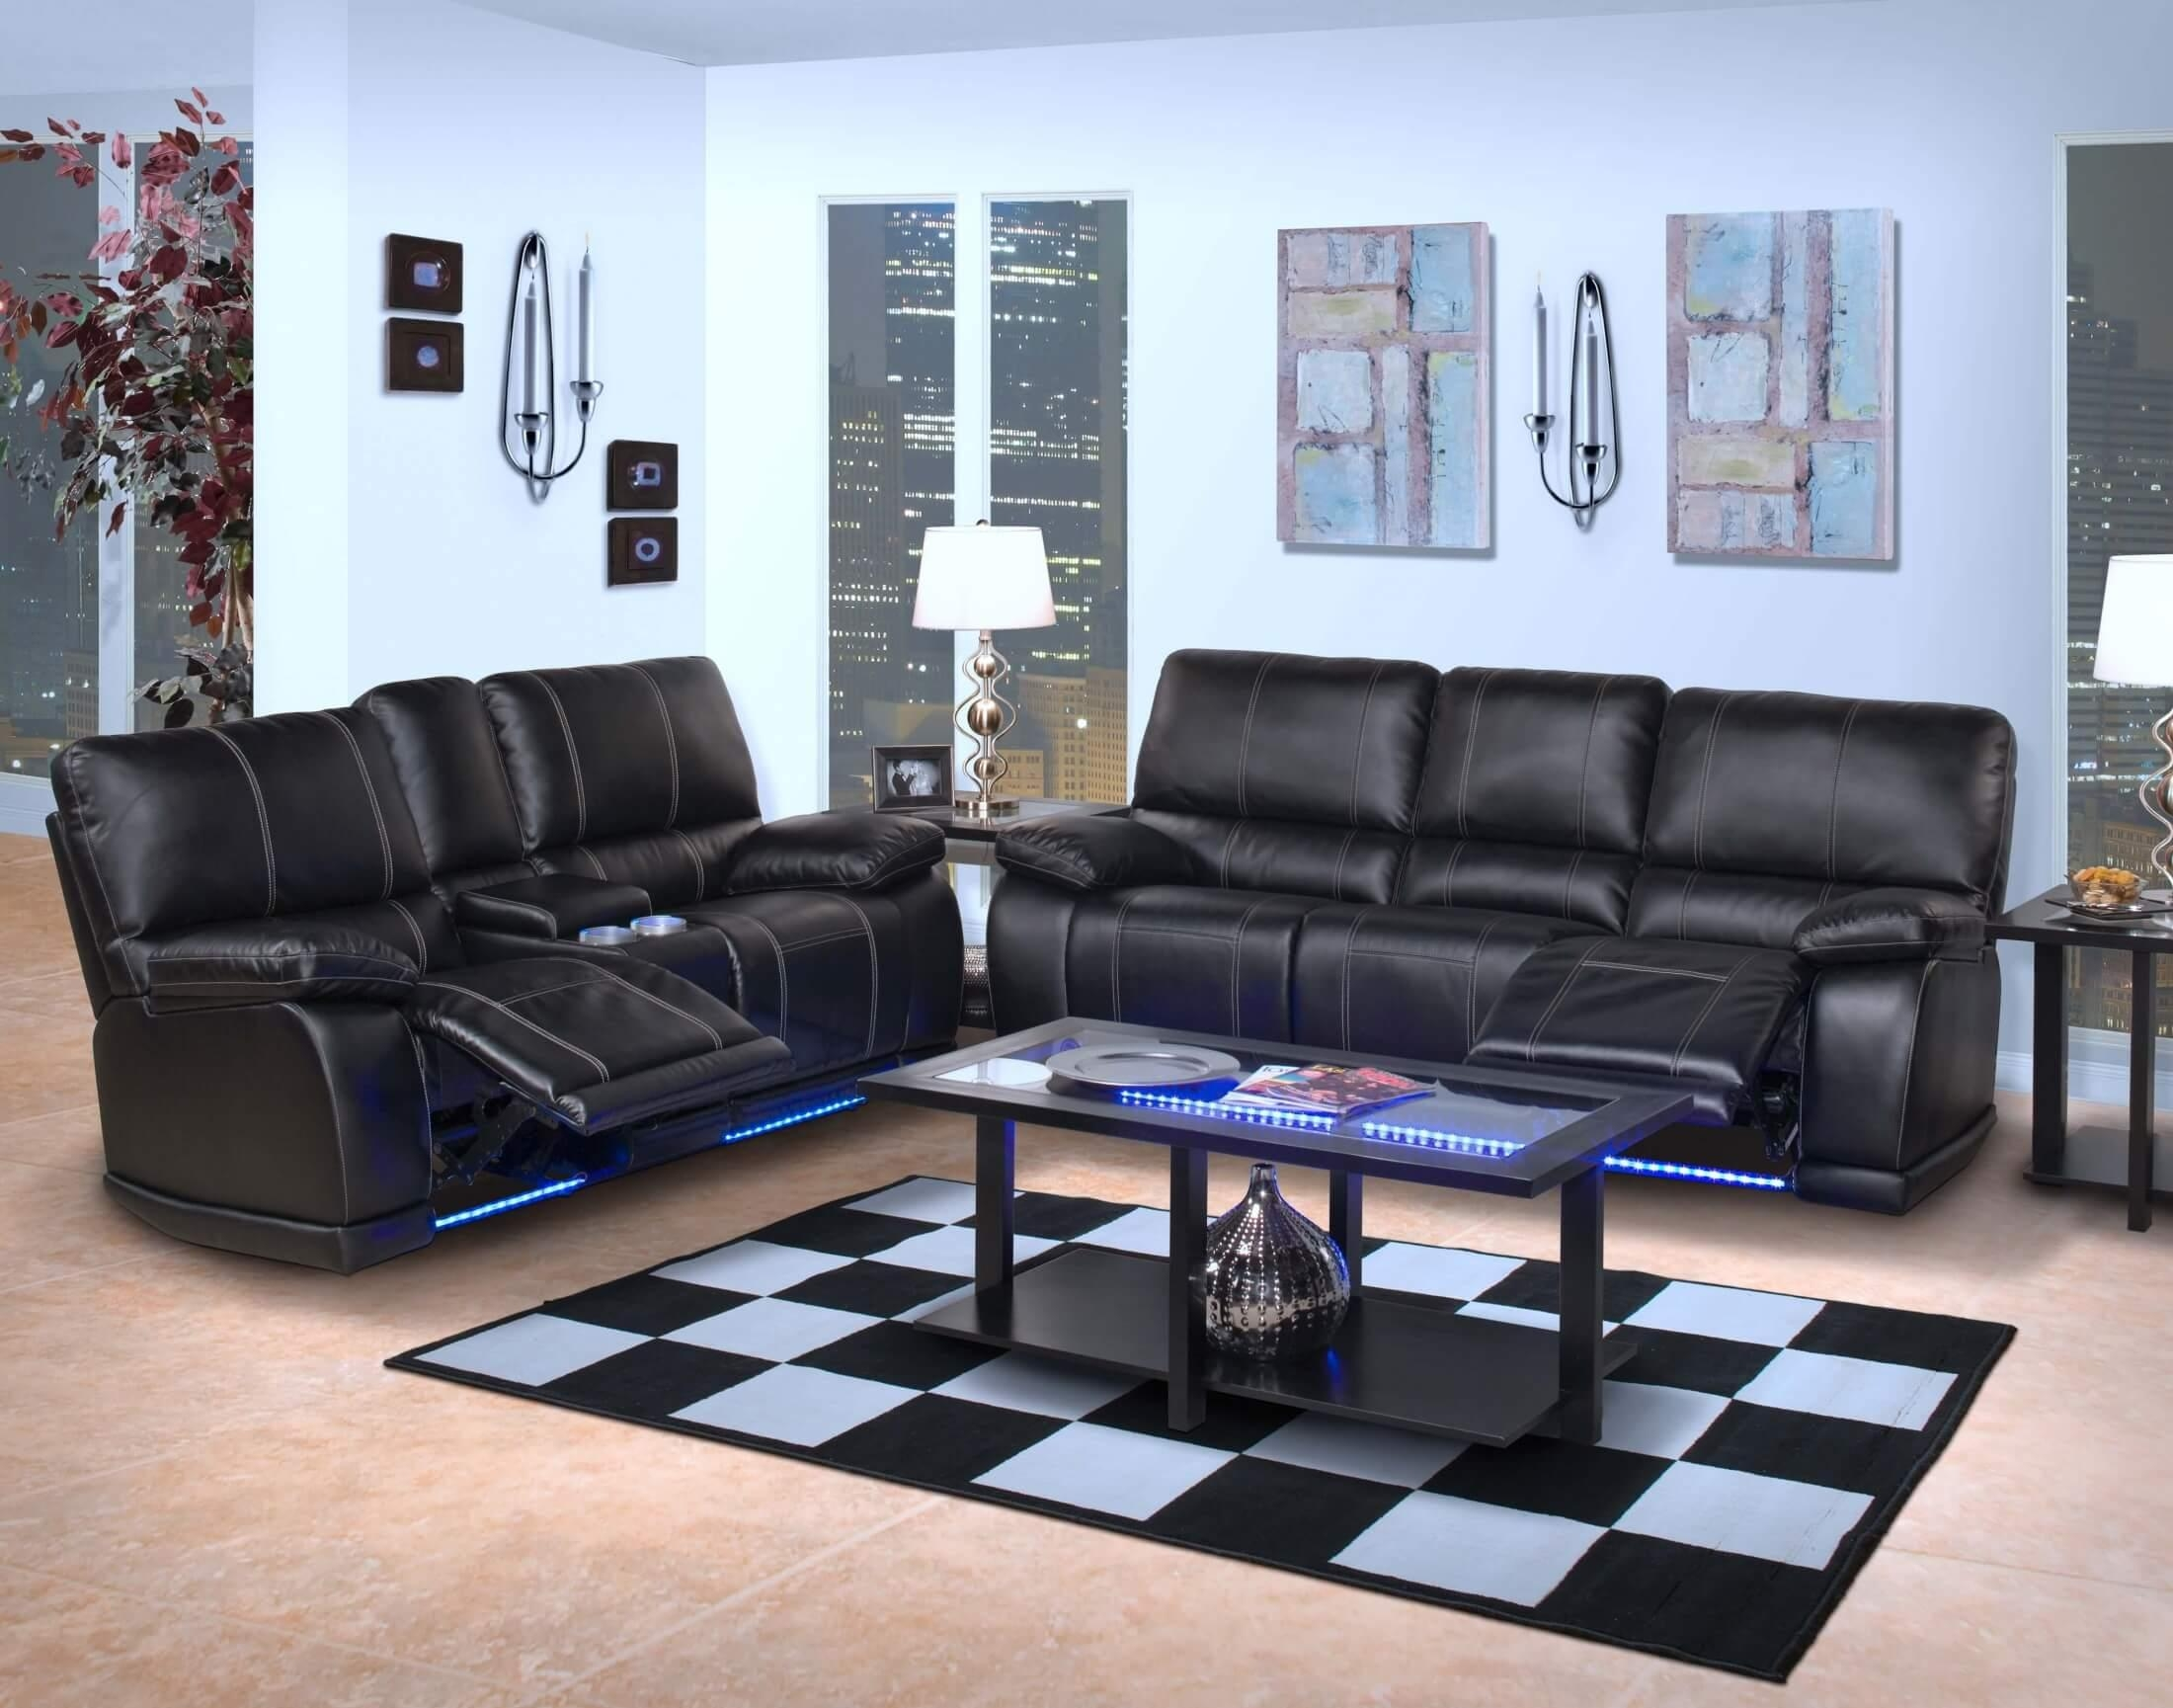 Electra Power Reclining Sectional With Led Lights Intended For Sofas With Lights (View 6 of 21)